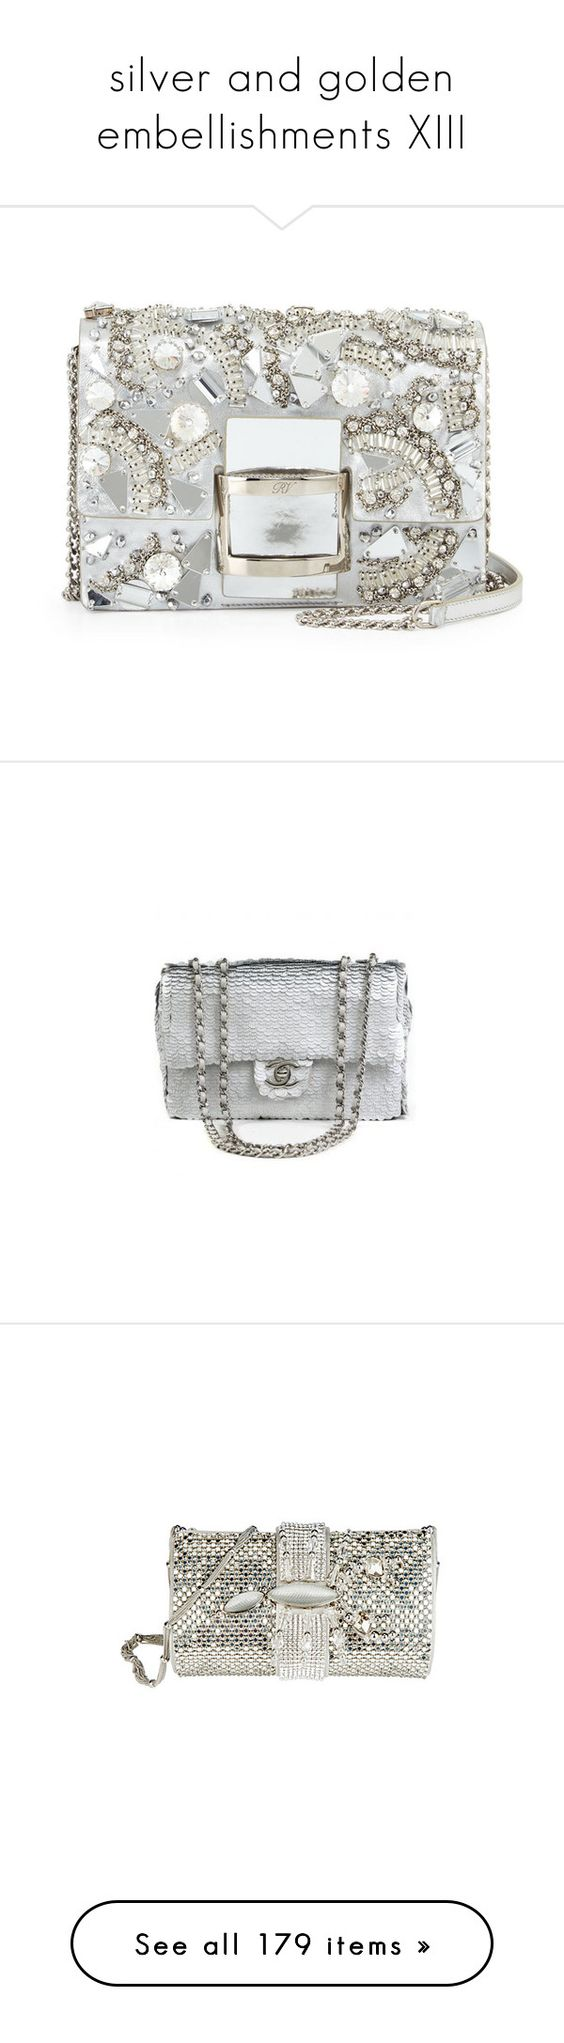 """""""silver and golden embellishments XIII"""" by cielle-eh-eh ❤ liked on Polyvore featuring bags, logo bags, hardware bag, white bags, j.w. anderson, anchor bag, handbags, shoulder bags, metallic and white leather handbags"""